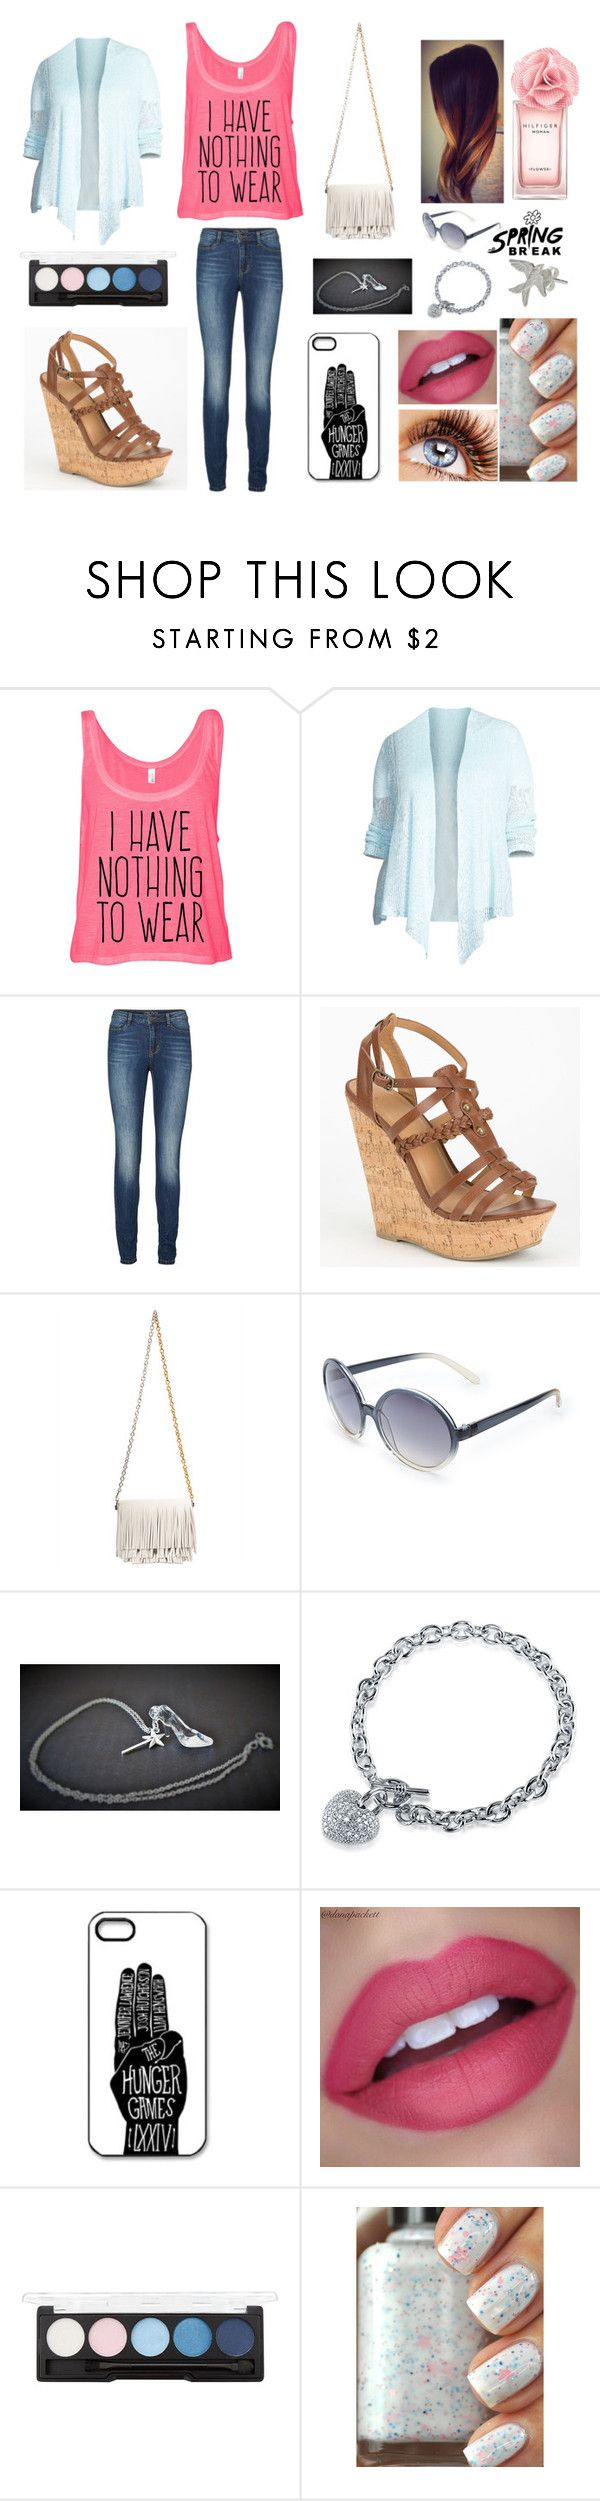 """Spring break"" by harlec8king ❤ liked on Polyvore featuring Eileen Fisher, Lipsy, Delicious, Proenza Schouler, Las Chicas, Forever 21, BERRICLE, Tommy Hilfiger and Zoe & Morgan"